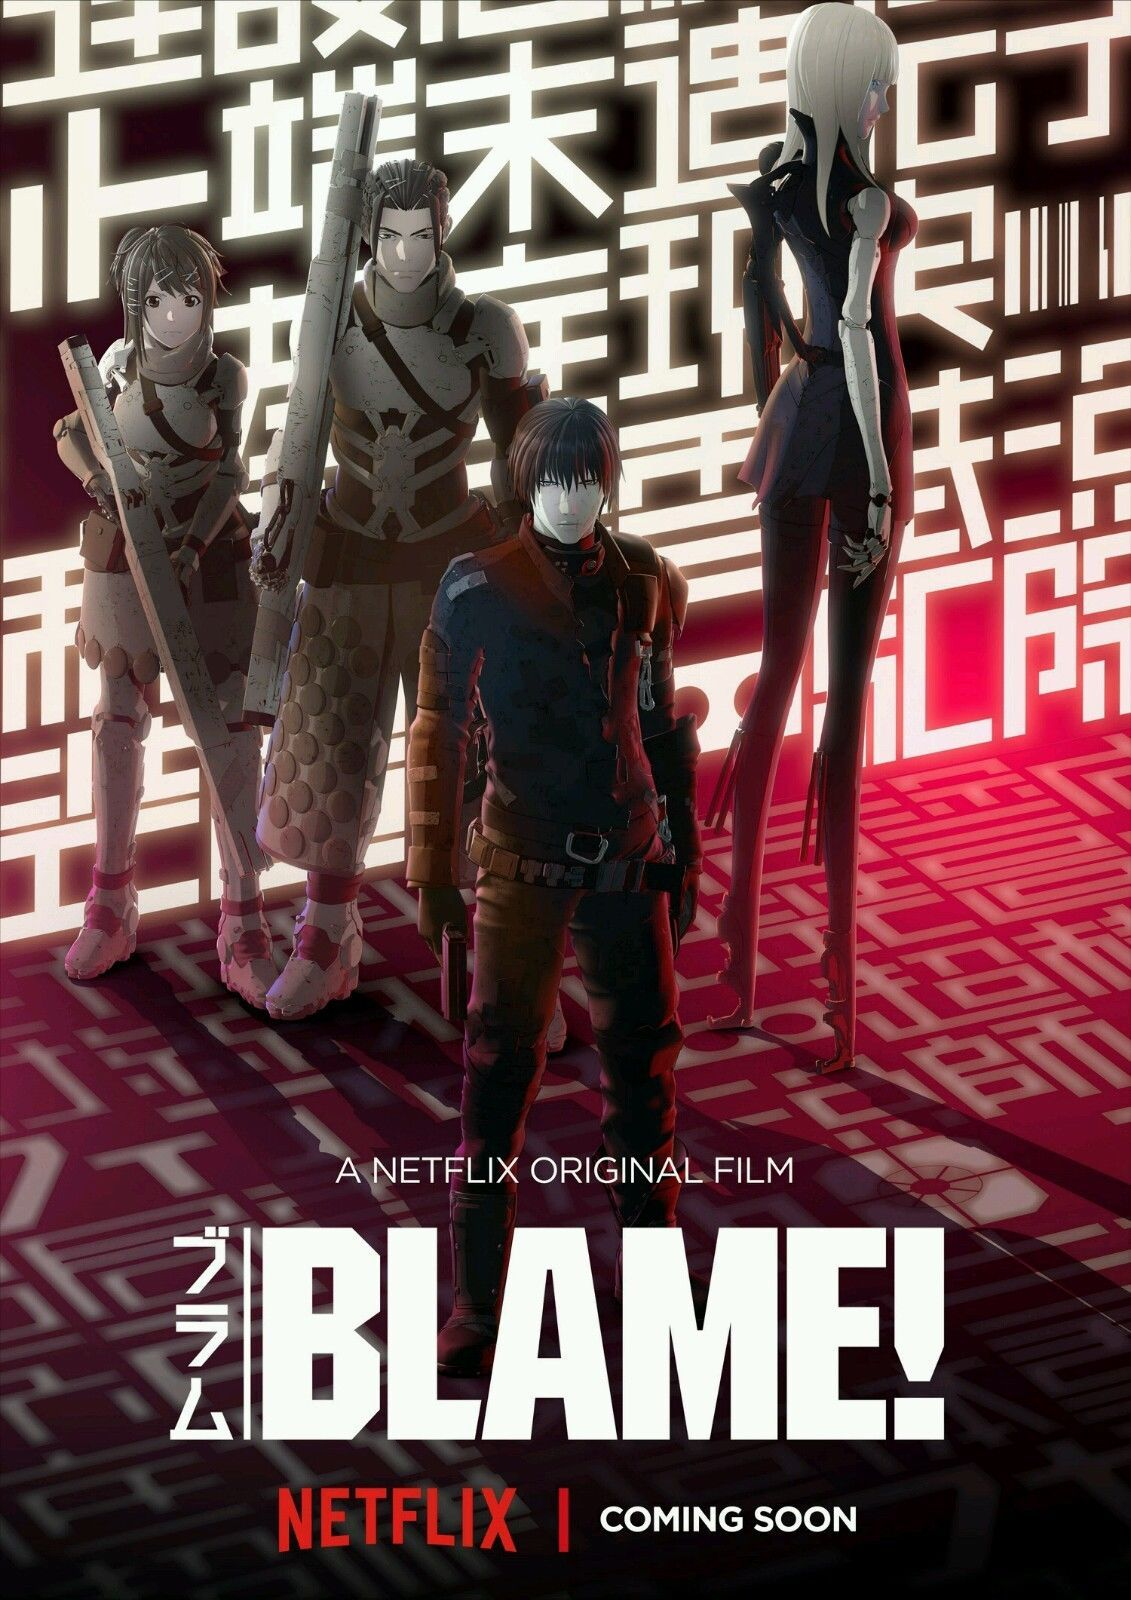 10.49 Blame Japanese Anime 2017 A Netflix Tv Film